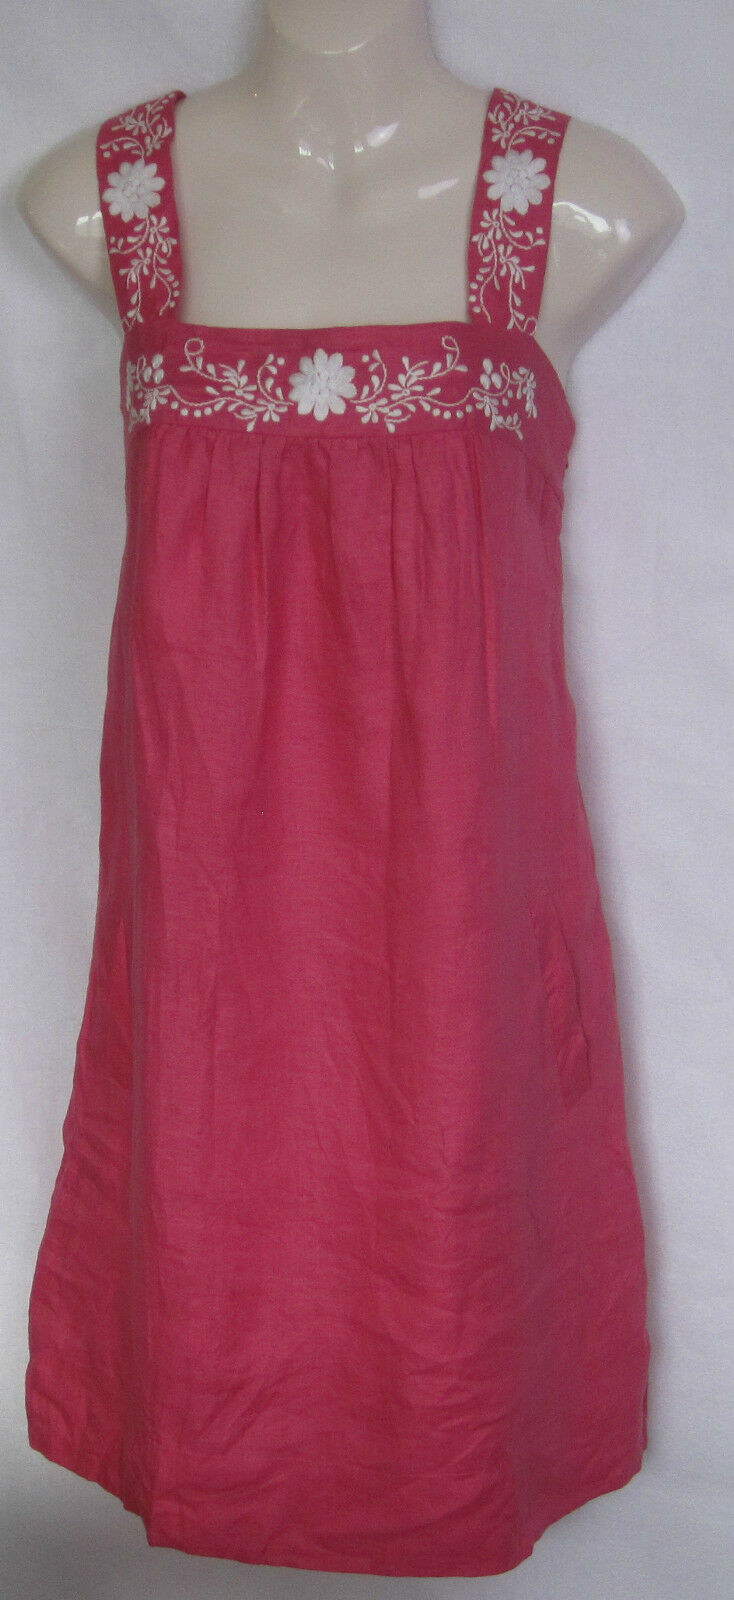 MARKS & SPENCER NEW LADIES PINK LINEN TUNIC SUN DRESS UK SIZE 10